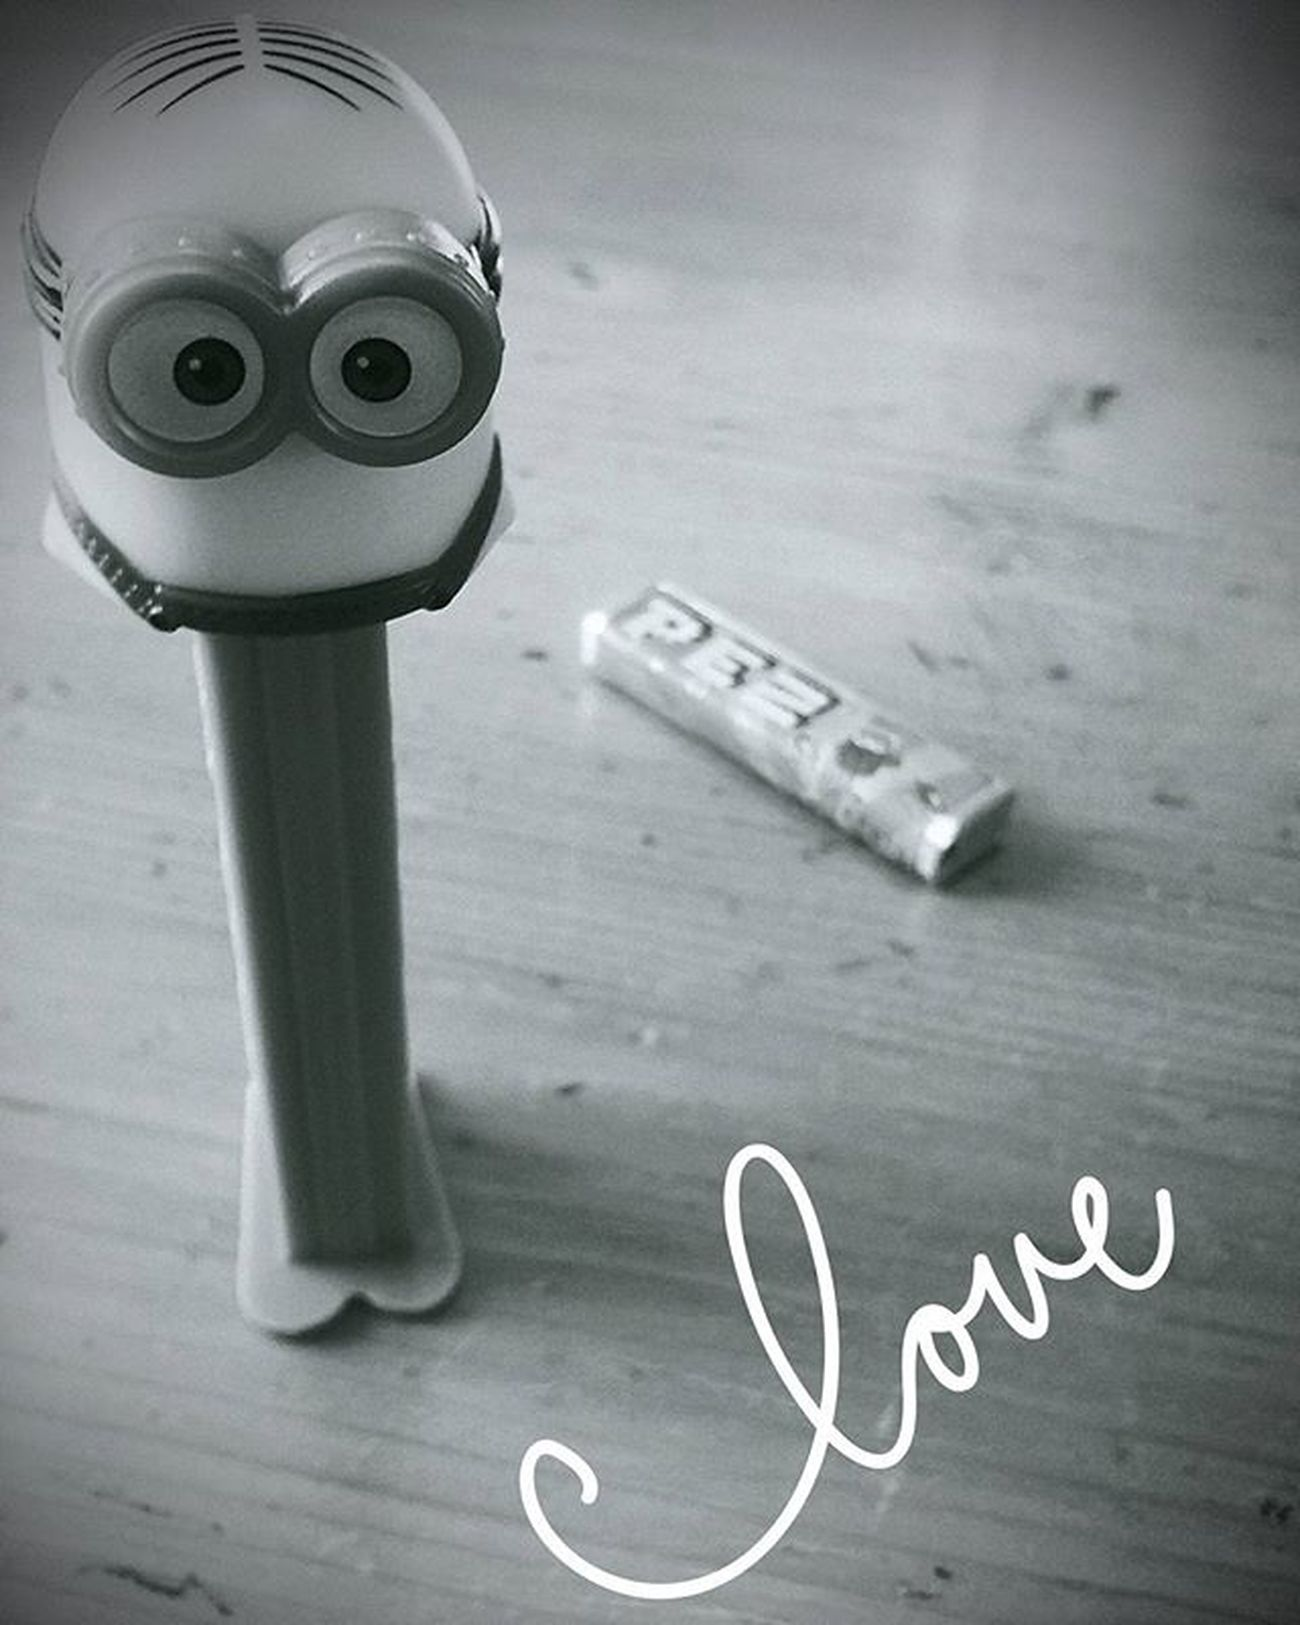 Toy Fun PEZ Candy Minion  Love Gift Minionlive Play Childish NeverGrowUp Bw Blackandwhite New Now